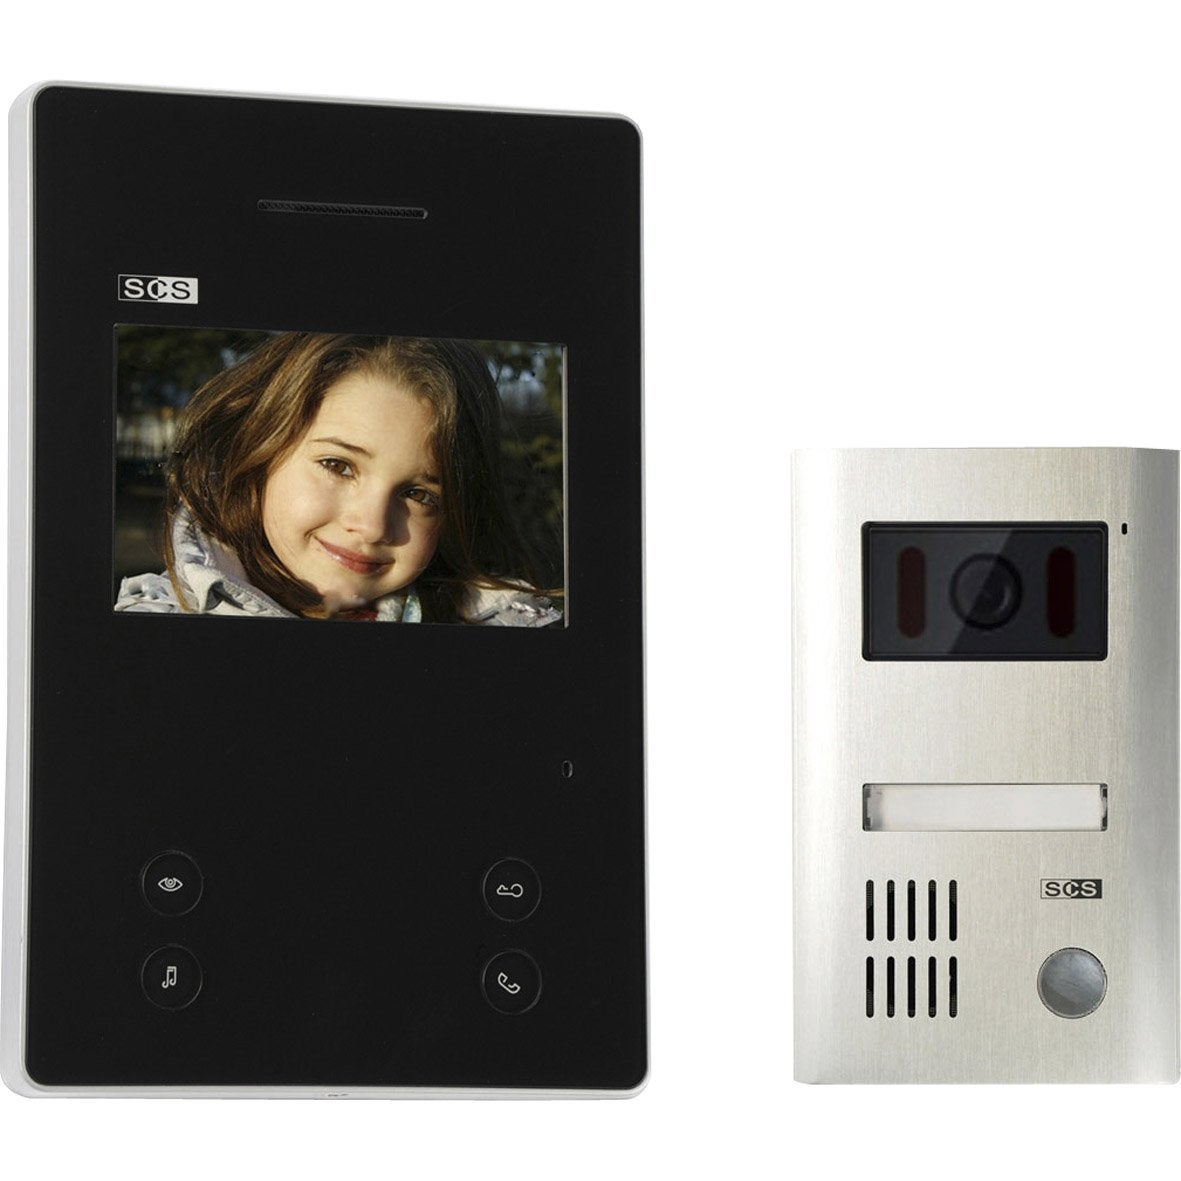 interphone visiophone 2 fils scs sentinel sofia m1e7 top b leroy merlin. Black Bedroom Furniture Sets. Home Design Ideas